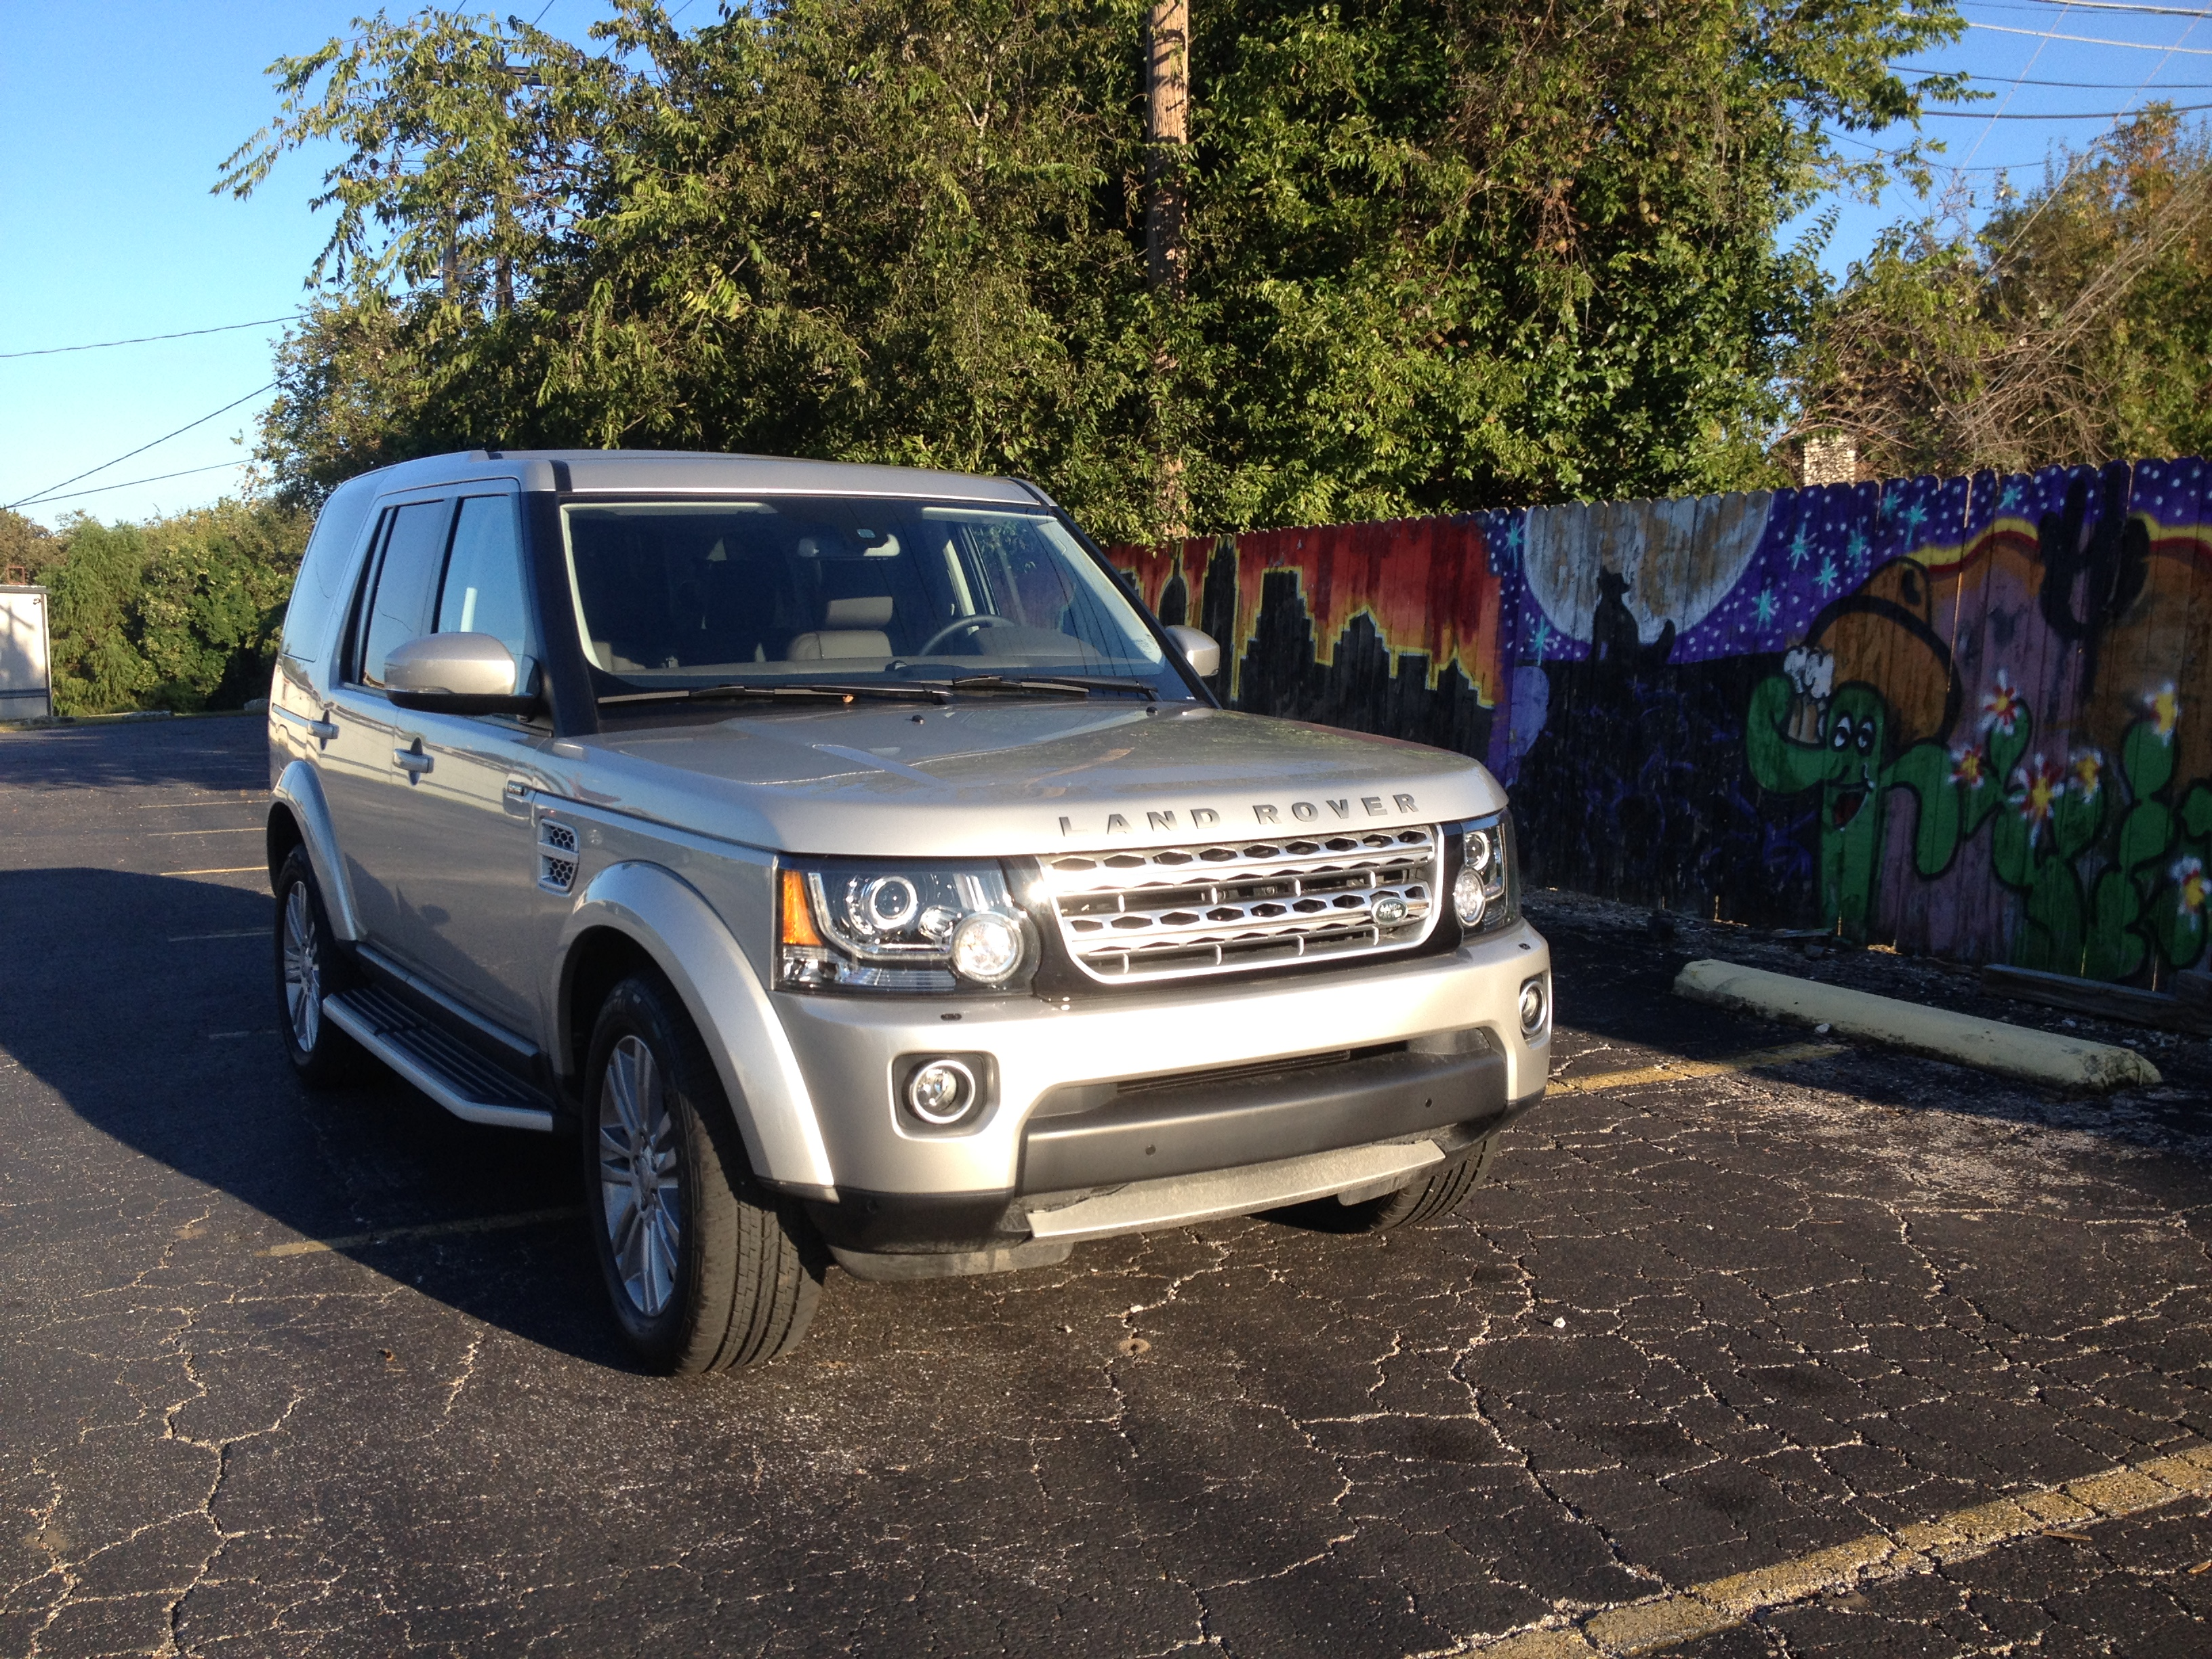 SUV Reviews: 2016 Lexus LX570 And Land Rover LR4 HSE LUX